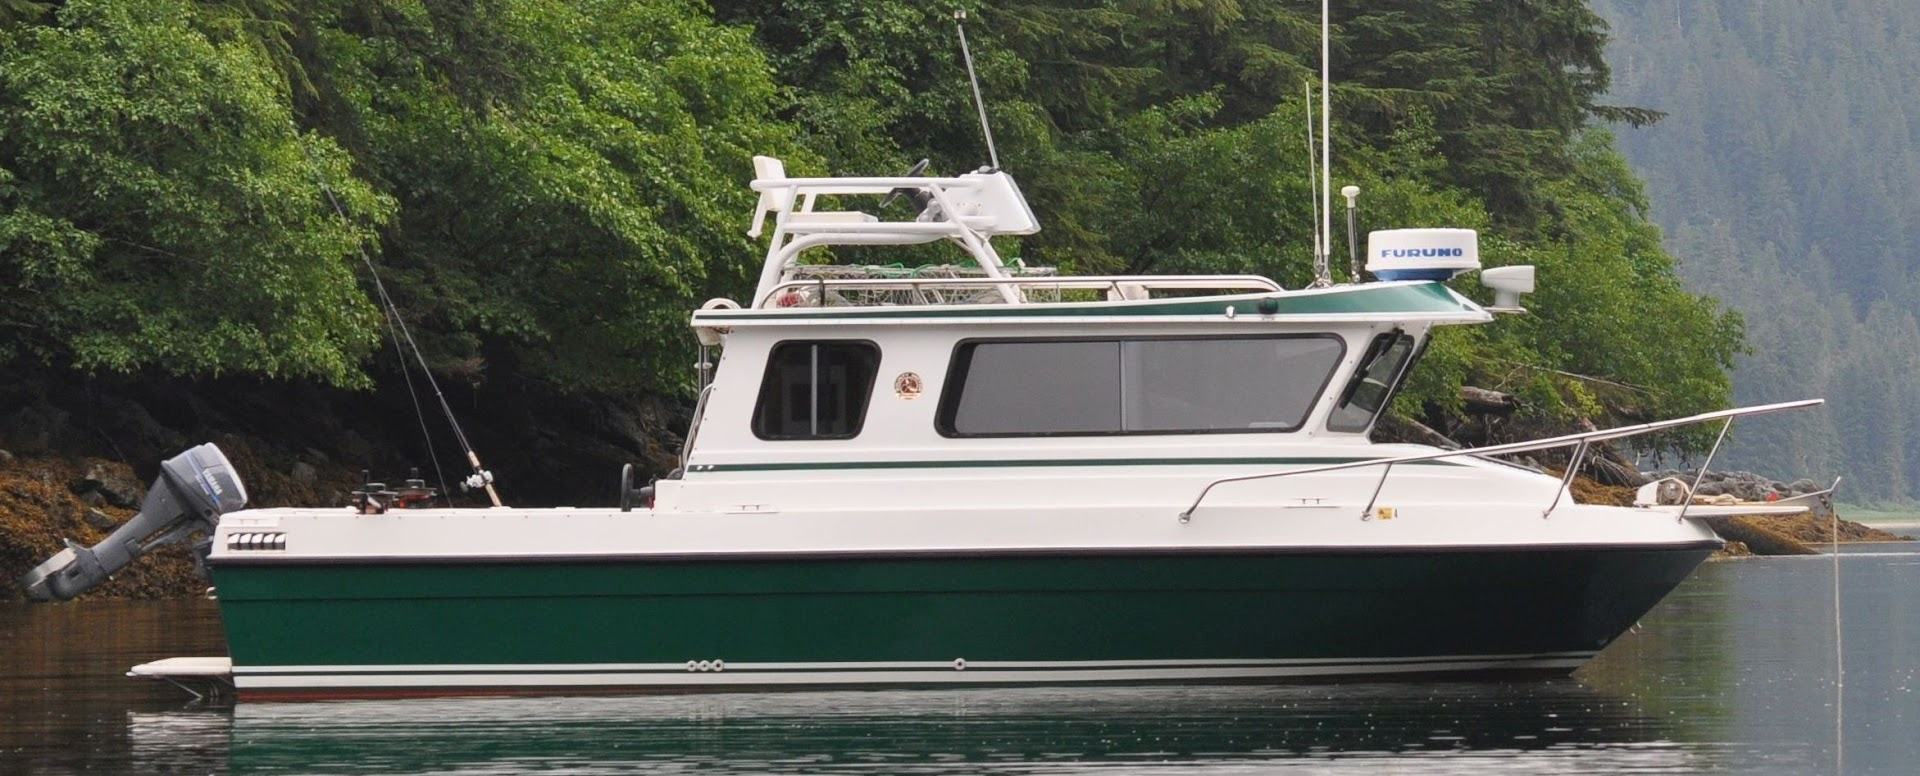 How to intelligently buy a boat - The Hull Truth - Boating and